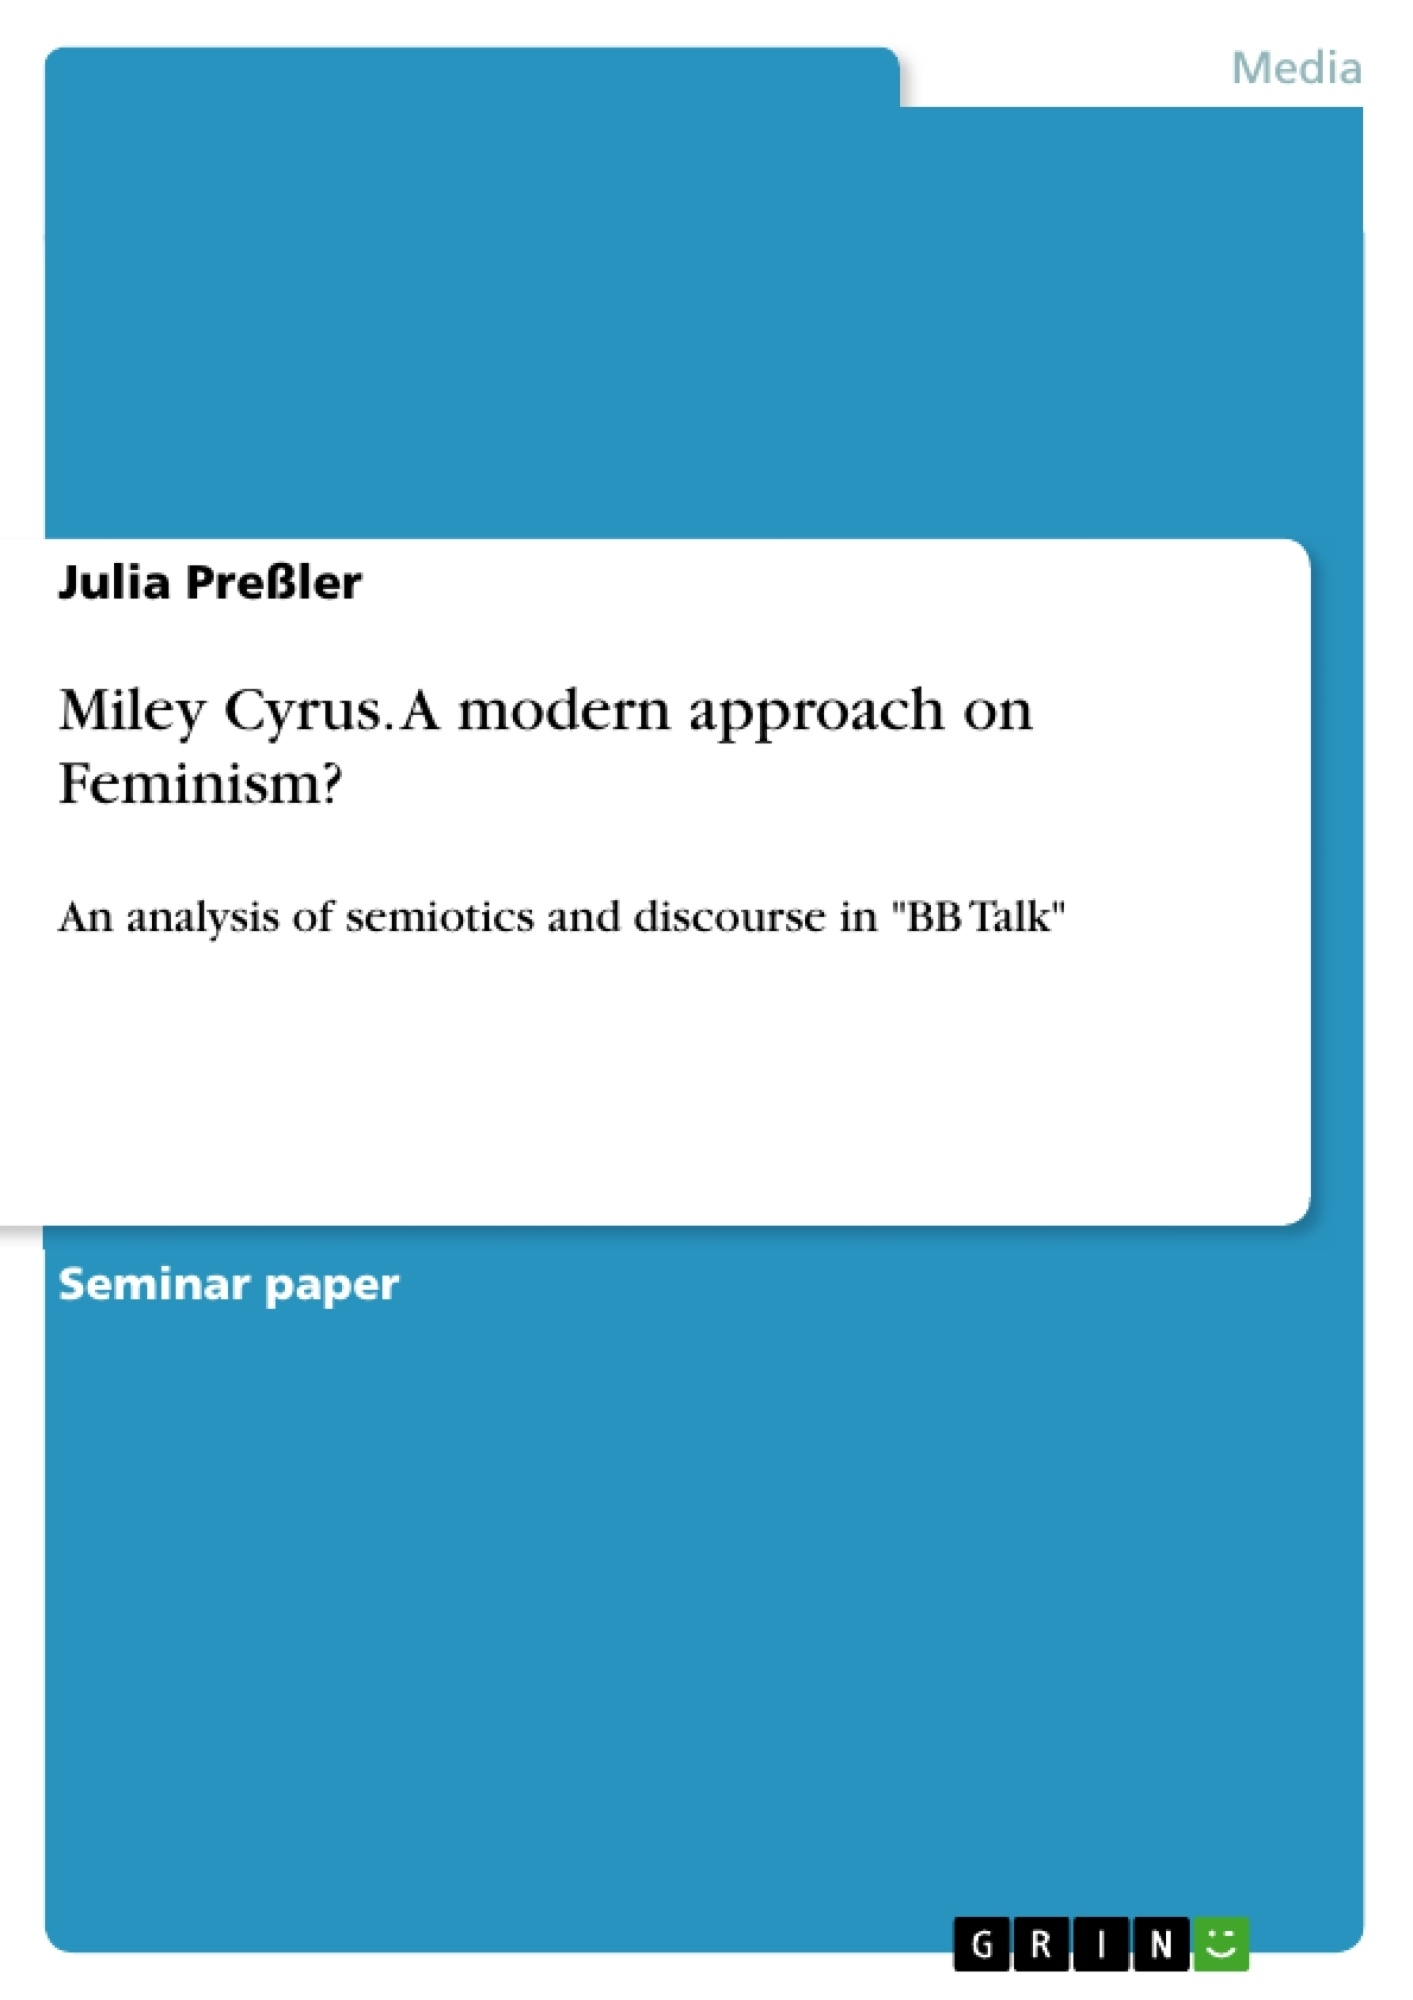 Title: Miley Cyrus. A modern approach on Feminism?